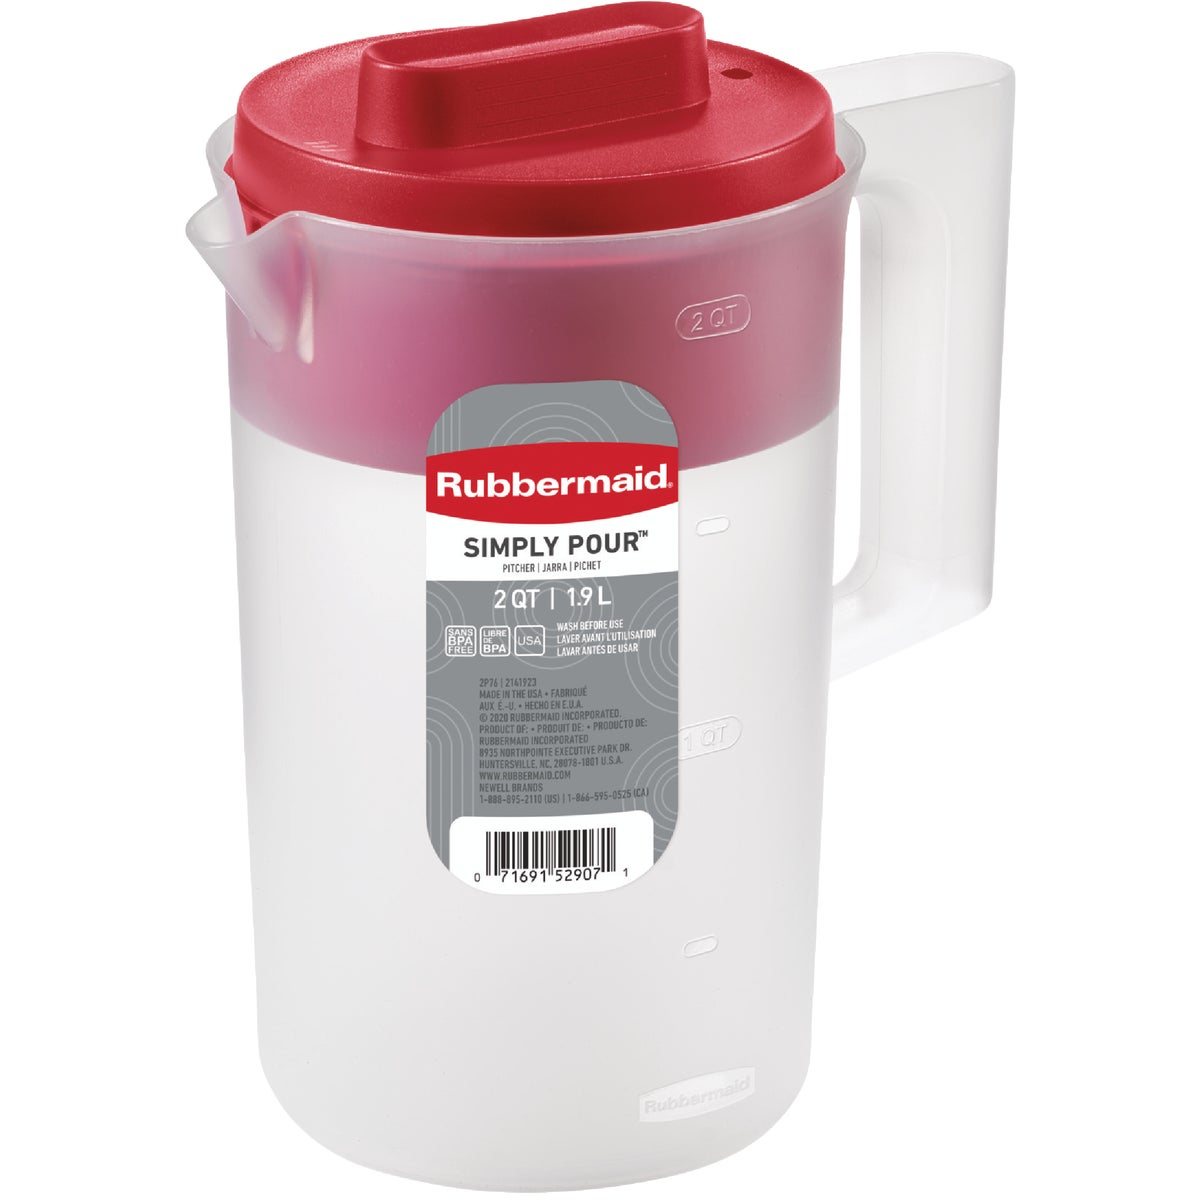 2.25QT RED LID PITCHER - 1777154 by Rubbermaid Home